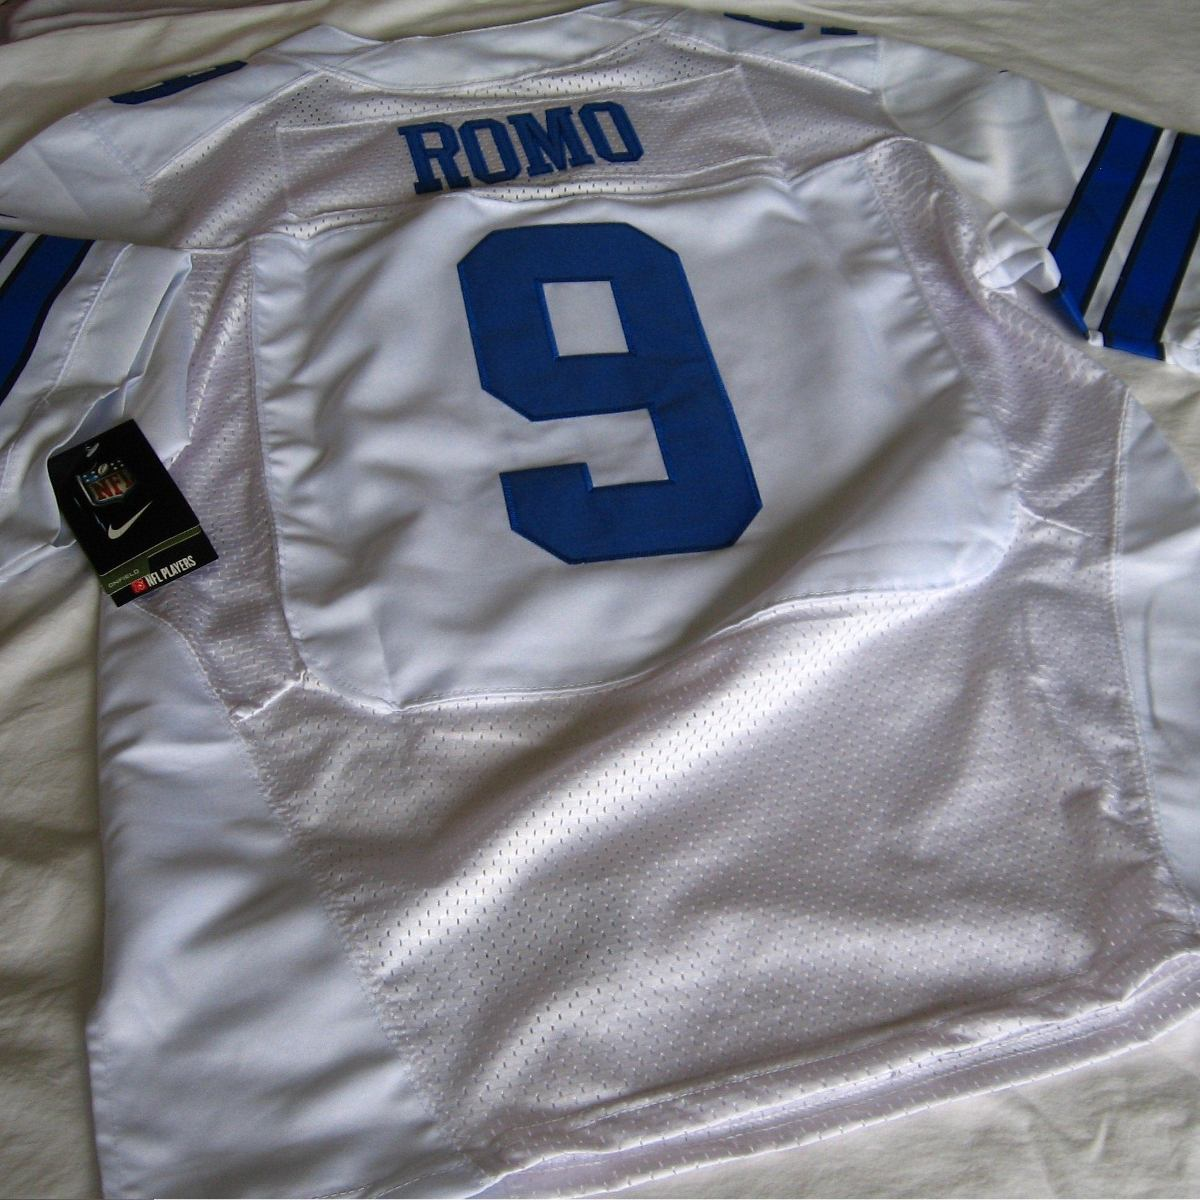 bf3d915b58 camisa dallas cowboys tony romo nfl - pronta entrega. Carregando zoom.